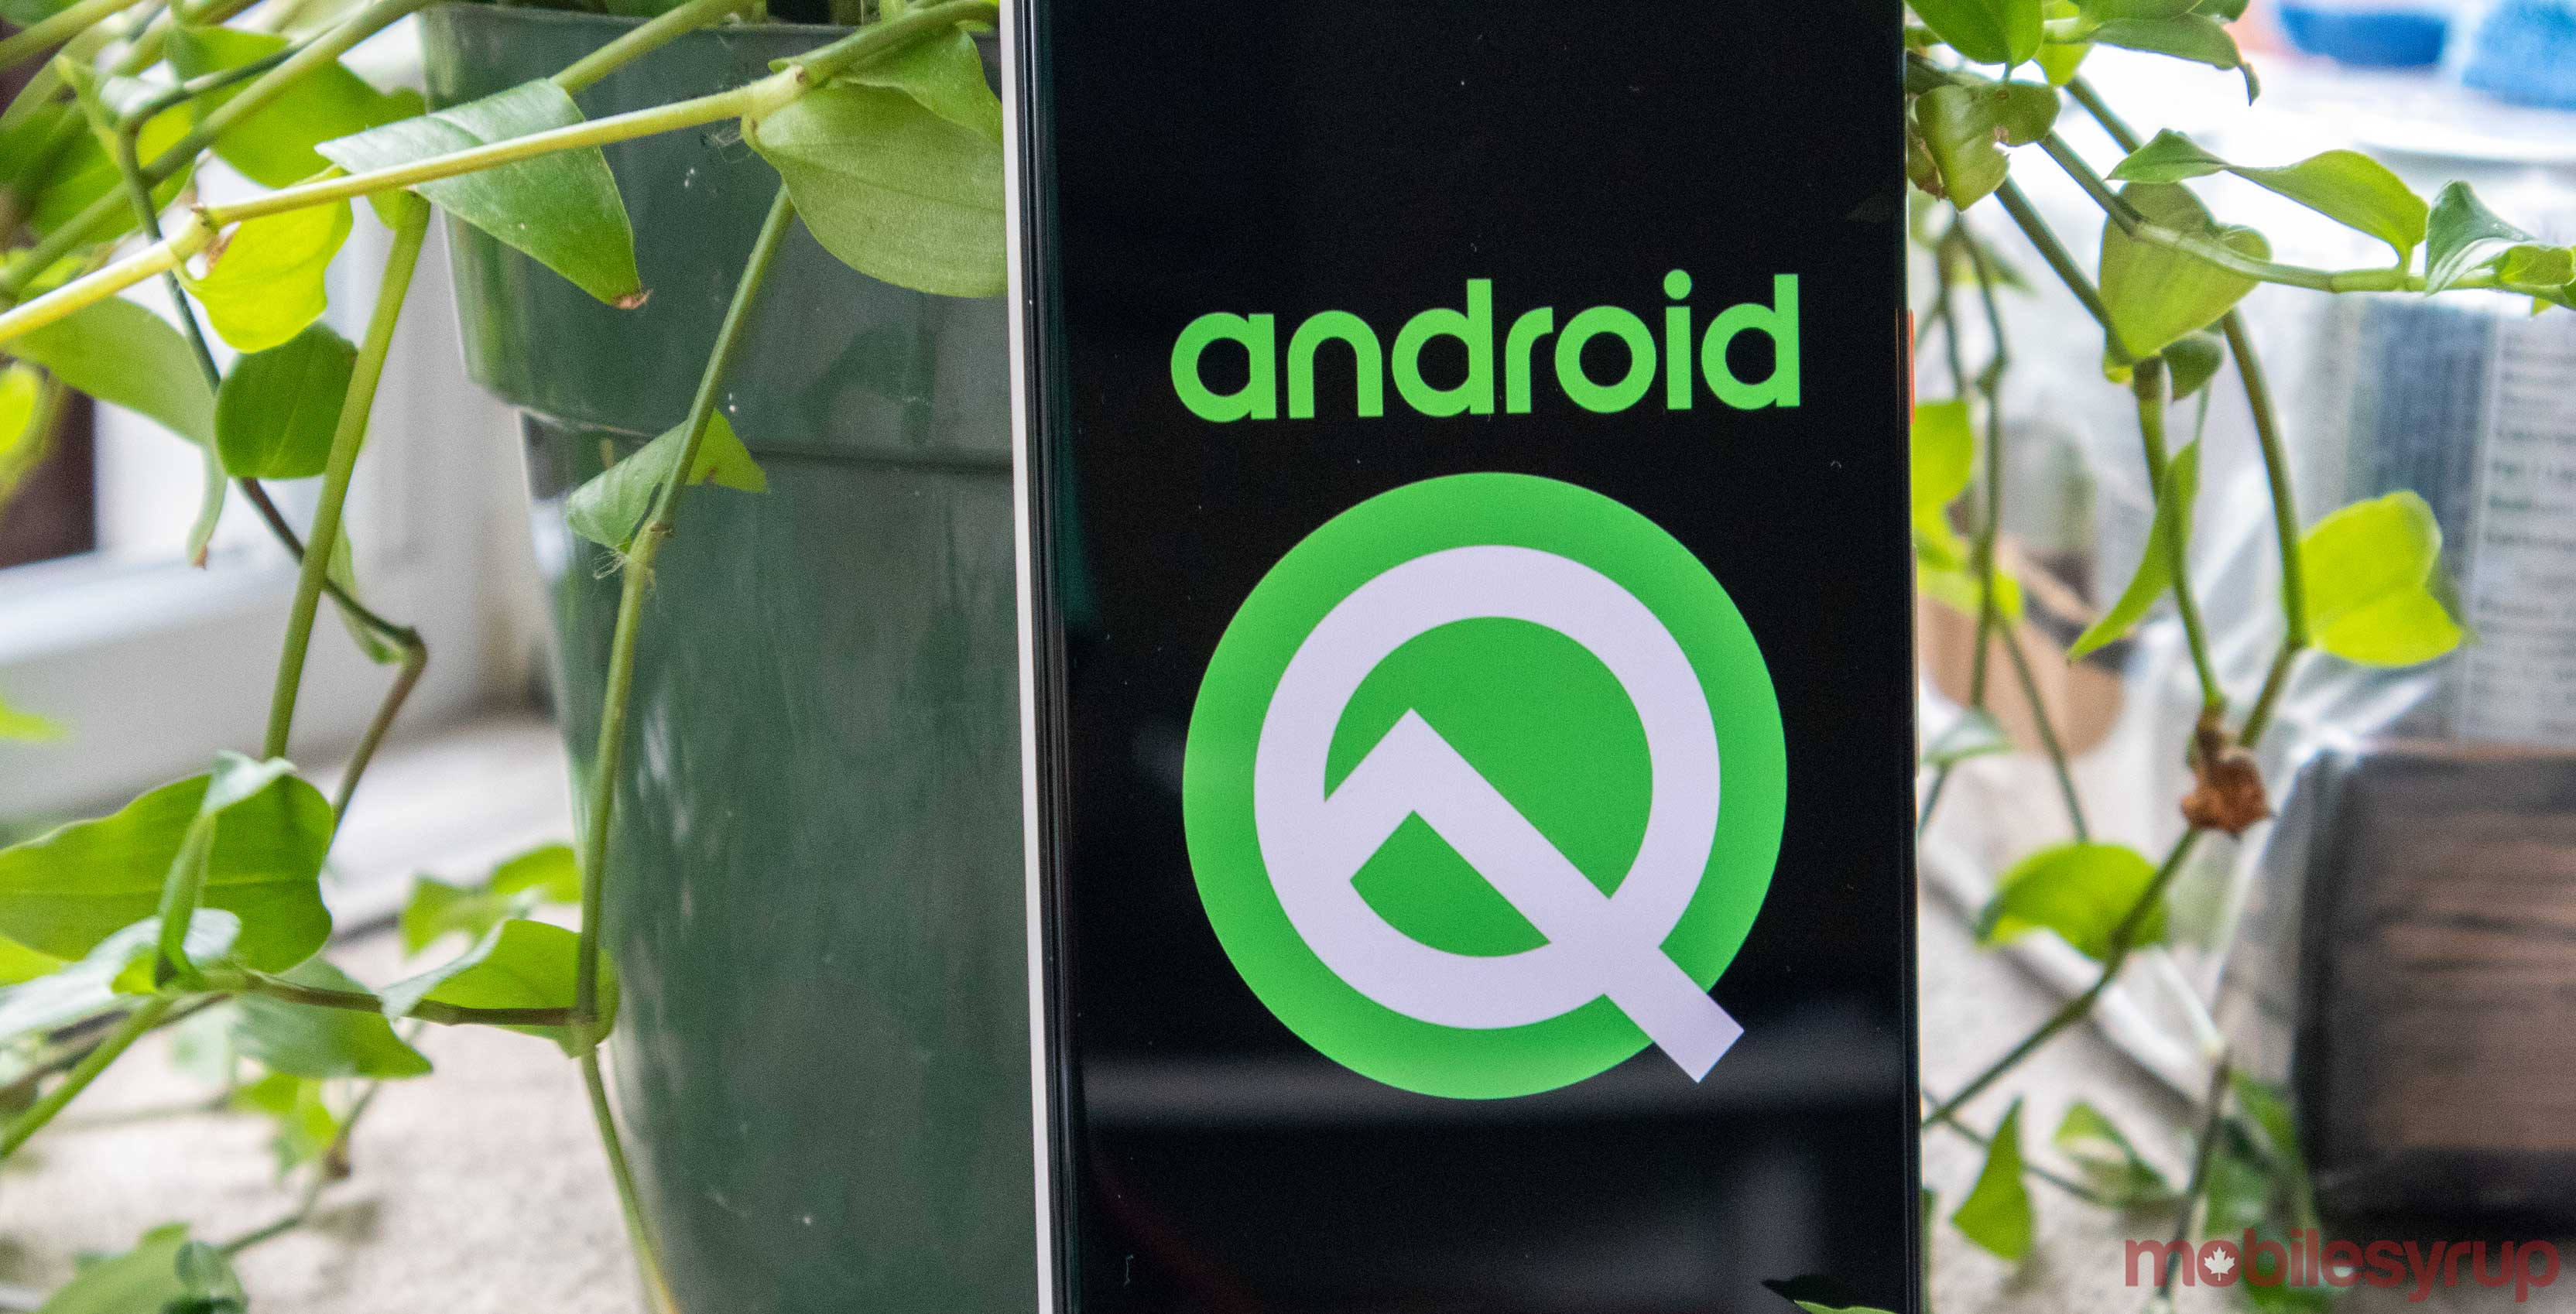 Leaked Android Q build features Google Translate in 'Recents' screen